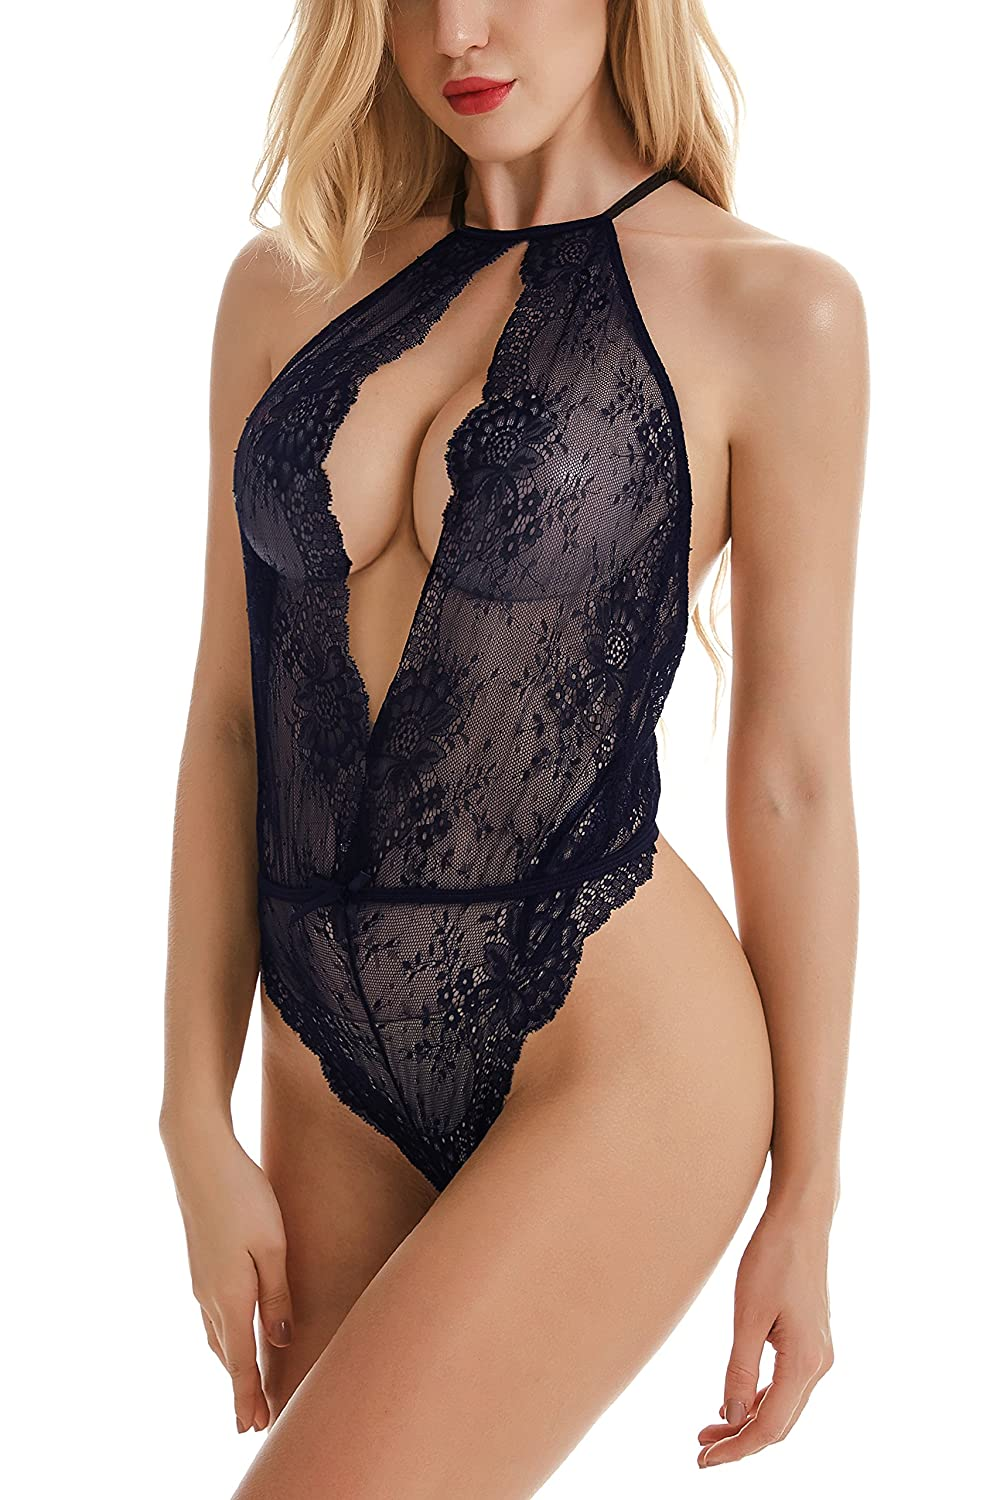 Teddies Free People Got You Teddy Bodysuit Romper Sexy Lingerie Lace Xs Black $88 Ture 100% Guarantee